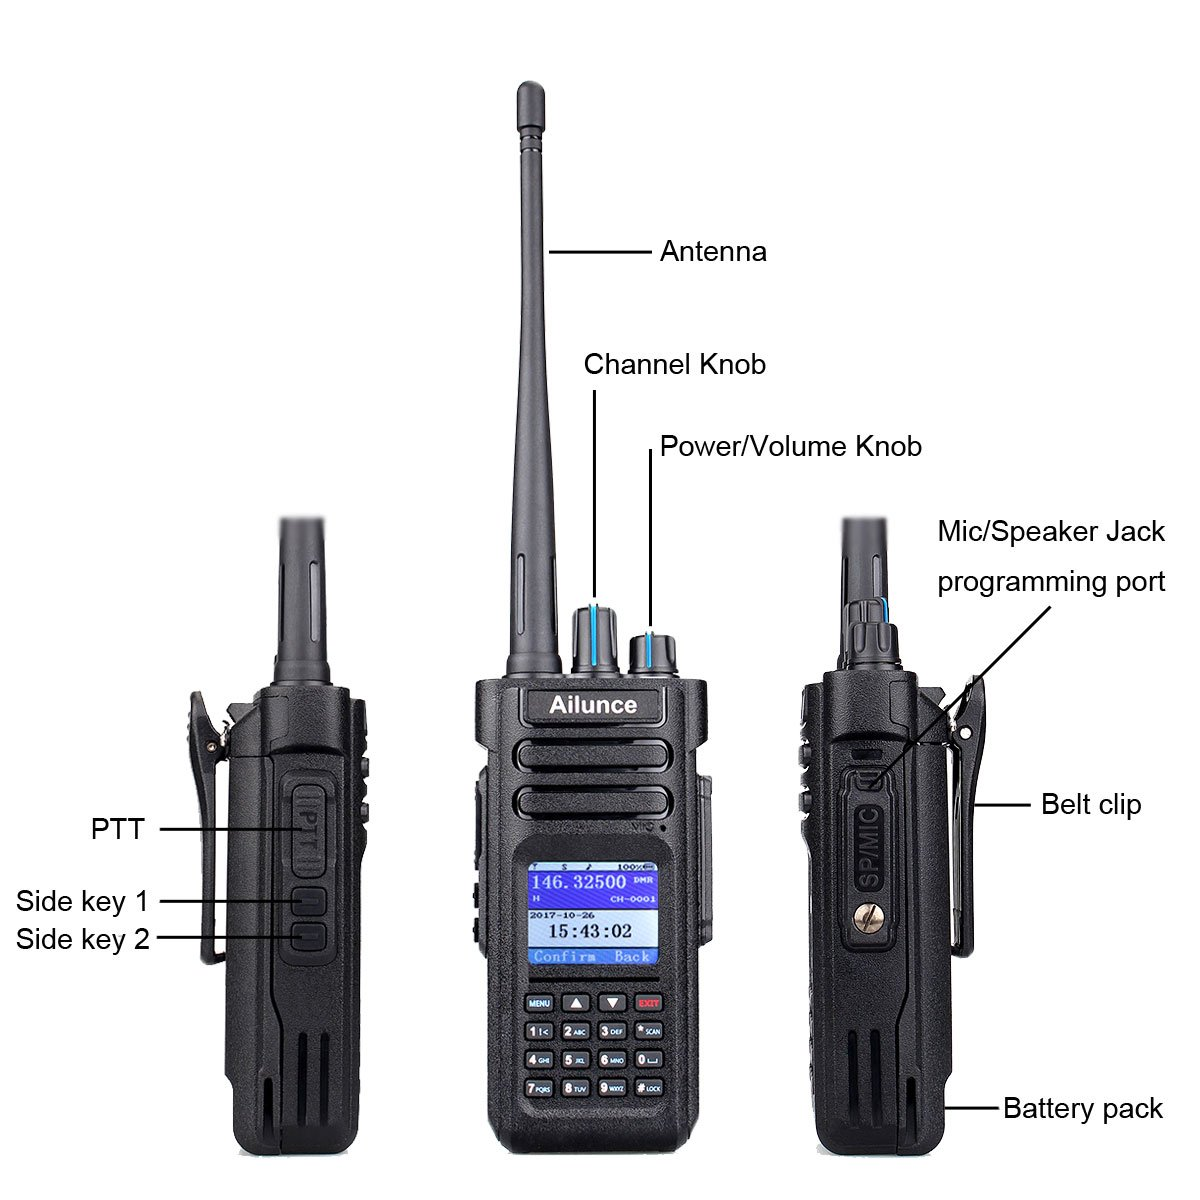 Ailunce HD1 DMR Digital Ham Radio Dual Band Dual Time Slot 10W 3000Channels 100000 Contacts 3200mAhz Waterproof long Range Two Way Radio with FM Function and Programming Cable(Black,1pack) by Ailunce (Image #2)